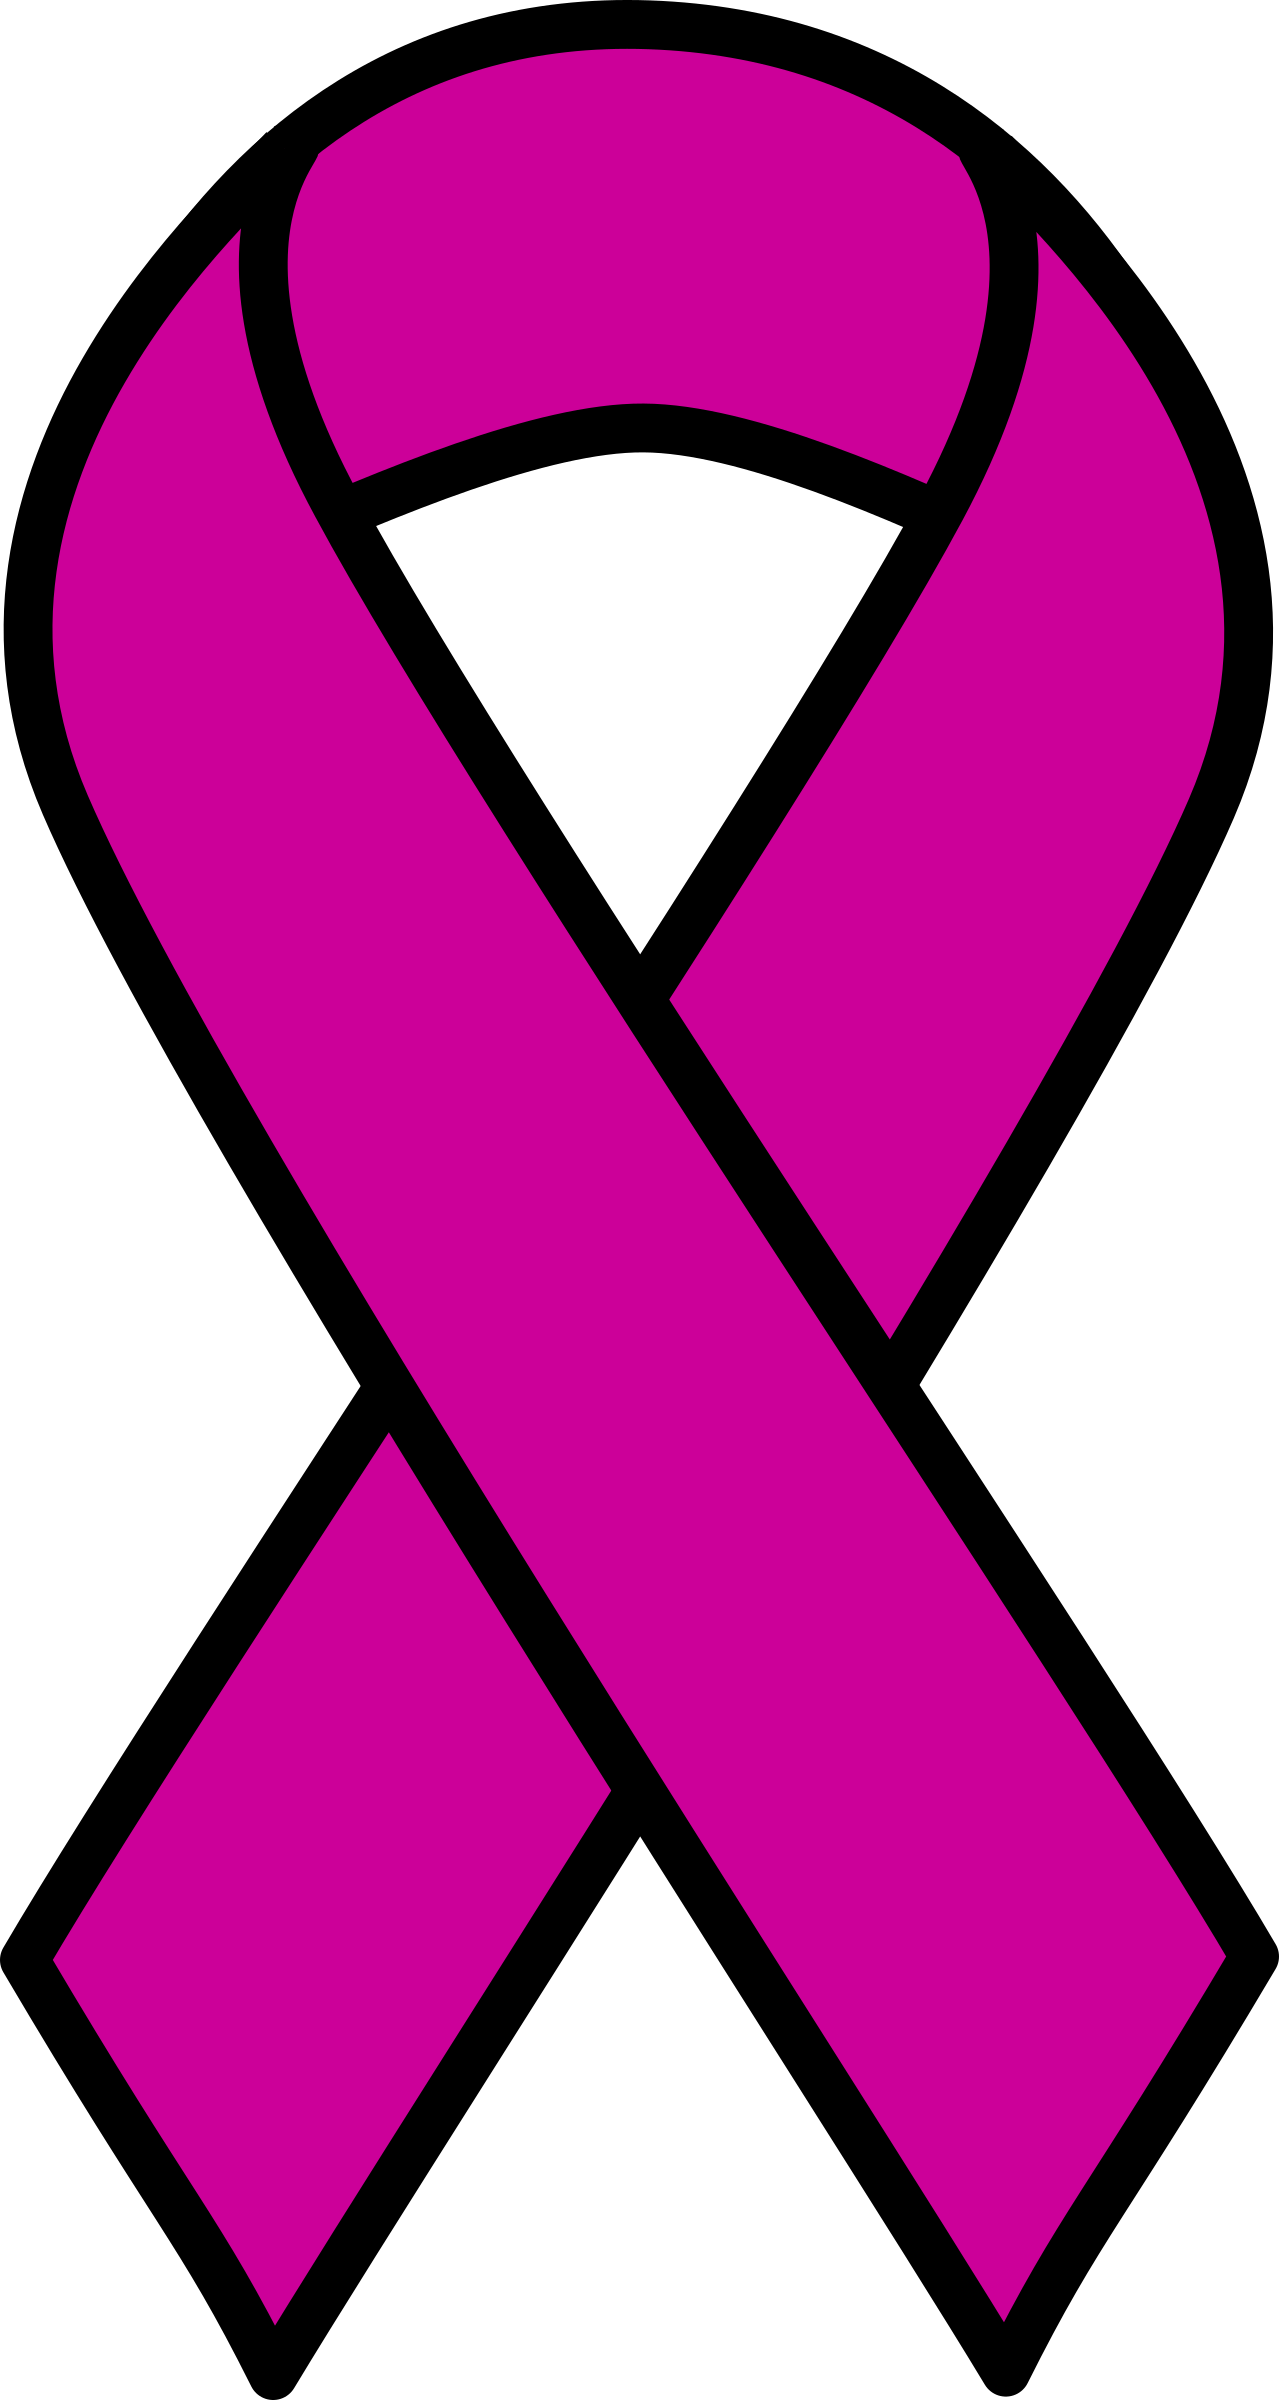 Purple Cancer Ribbon: Leiomyosarcoma, Testicular Cancer, and Pancreatic Cancer by barnheartowl